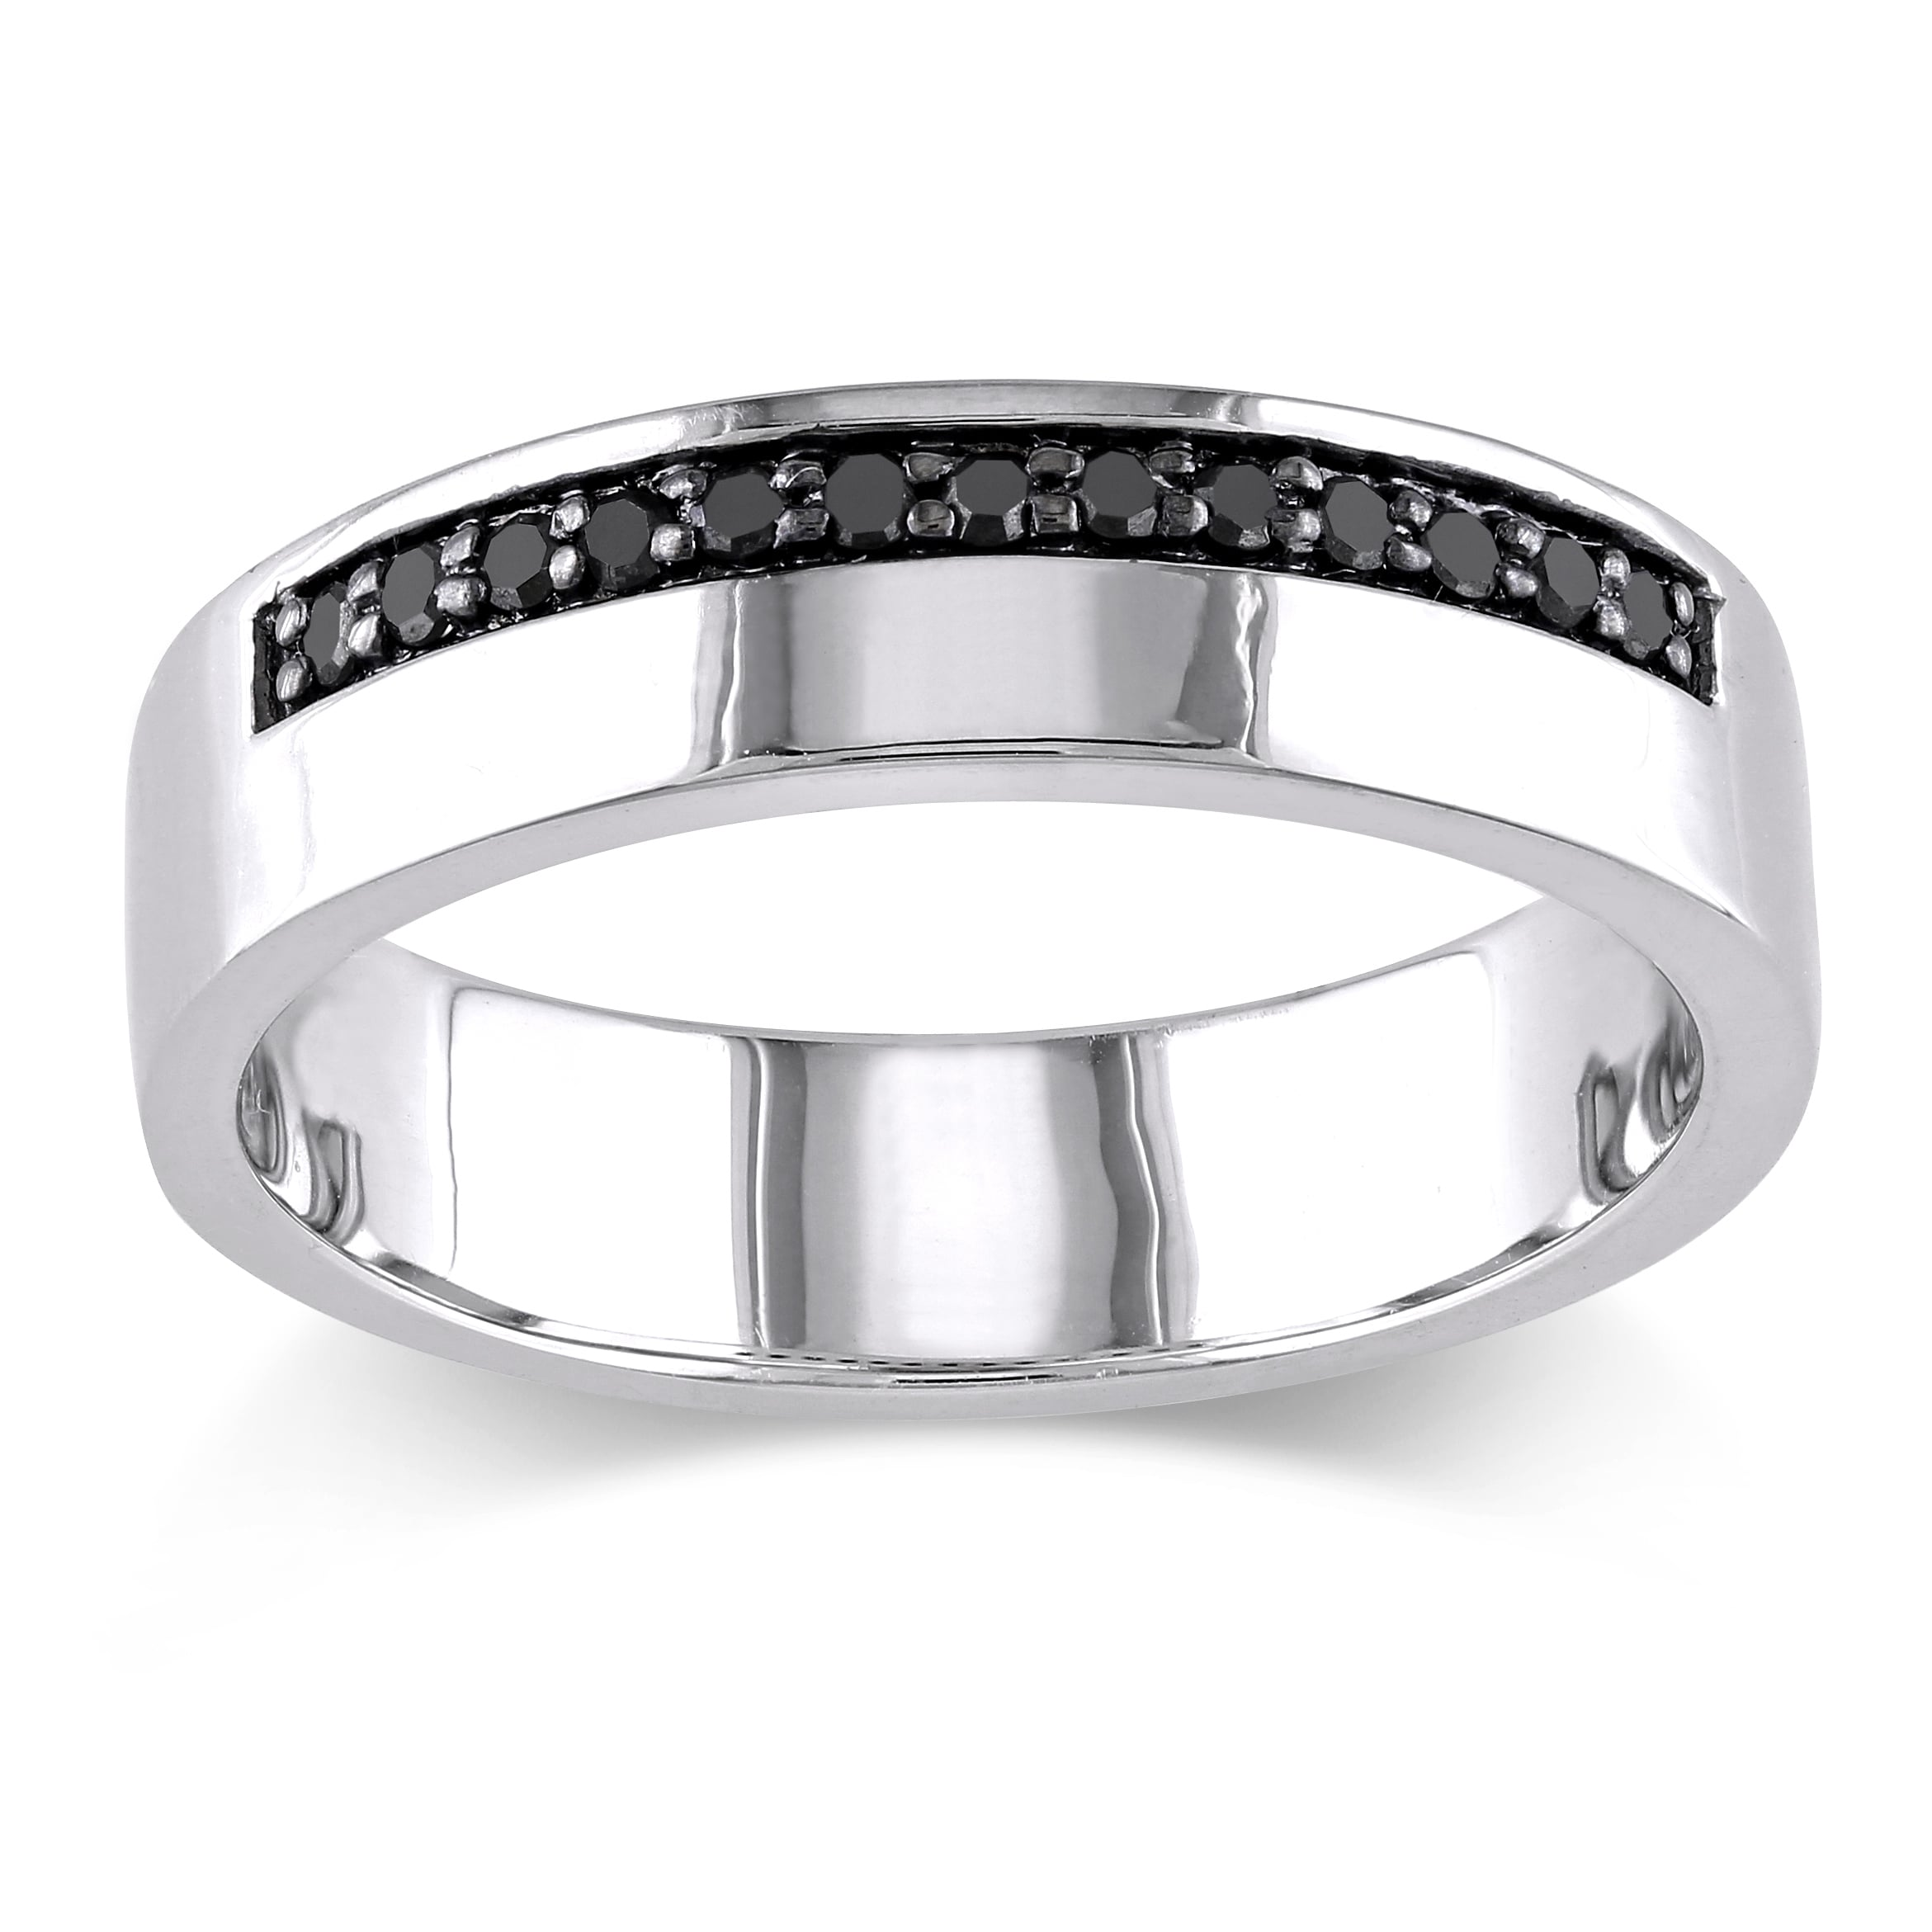 wedding band ring platinum court his rings titanium bands nologo black c sets and hers matching diamond